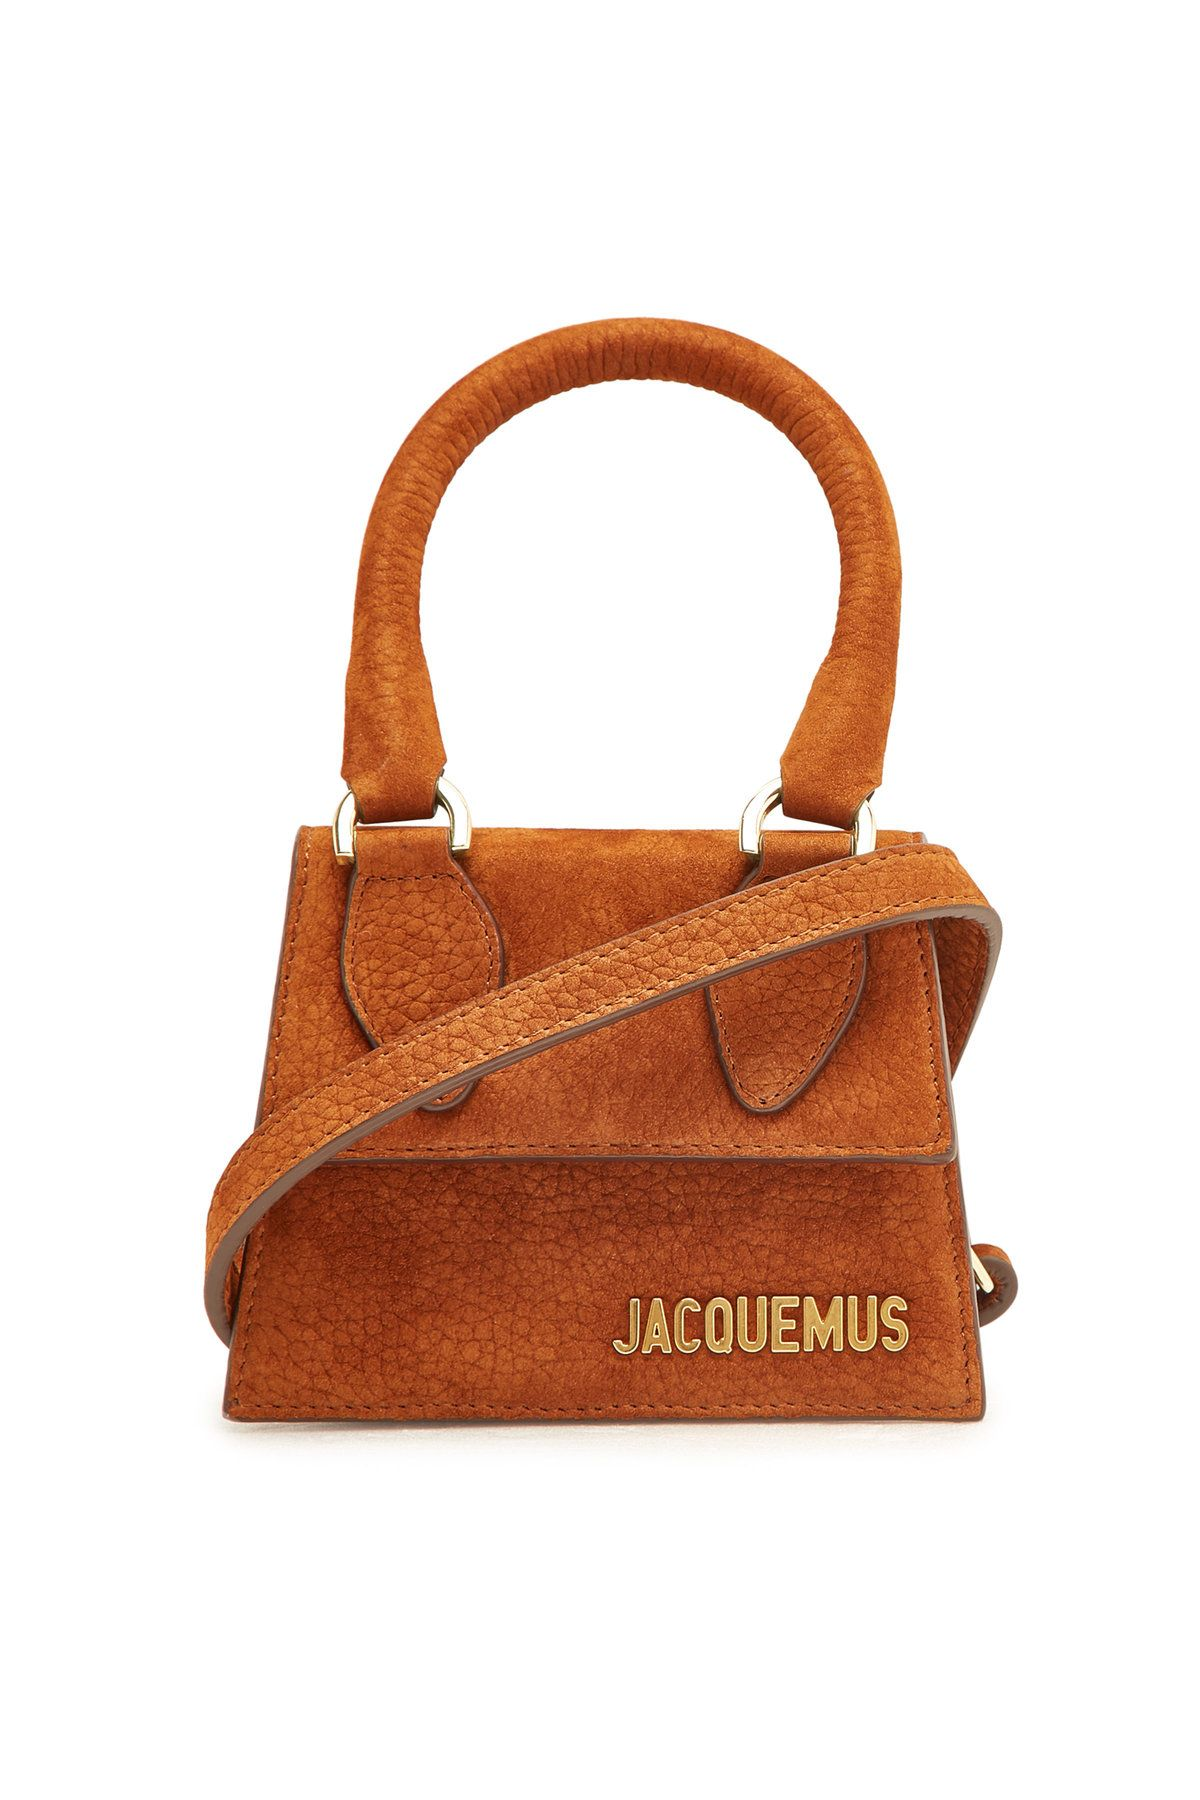 a0658f3dc998 Jacquemus - Le Chiquita Leather Micro Bag on STYLEBOP.com